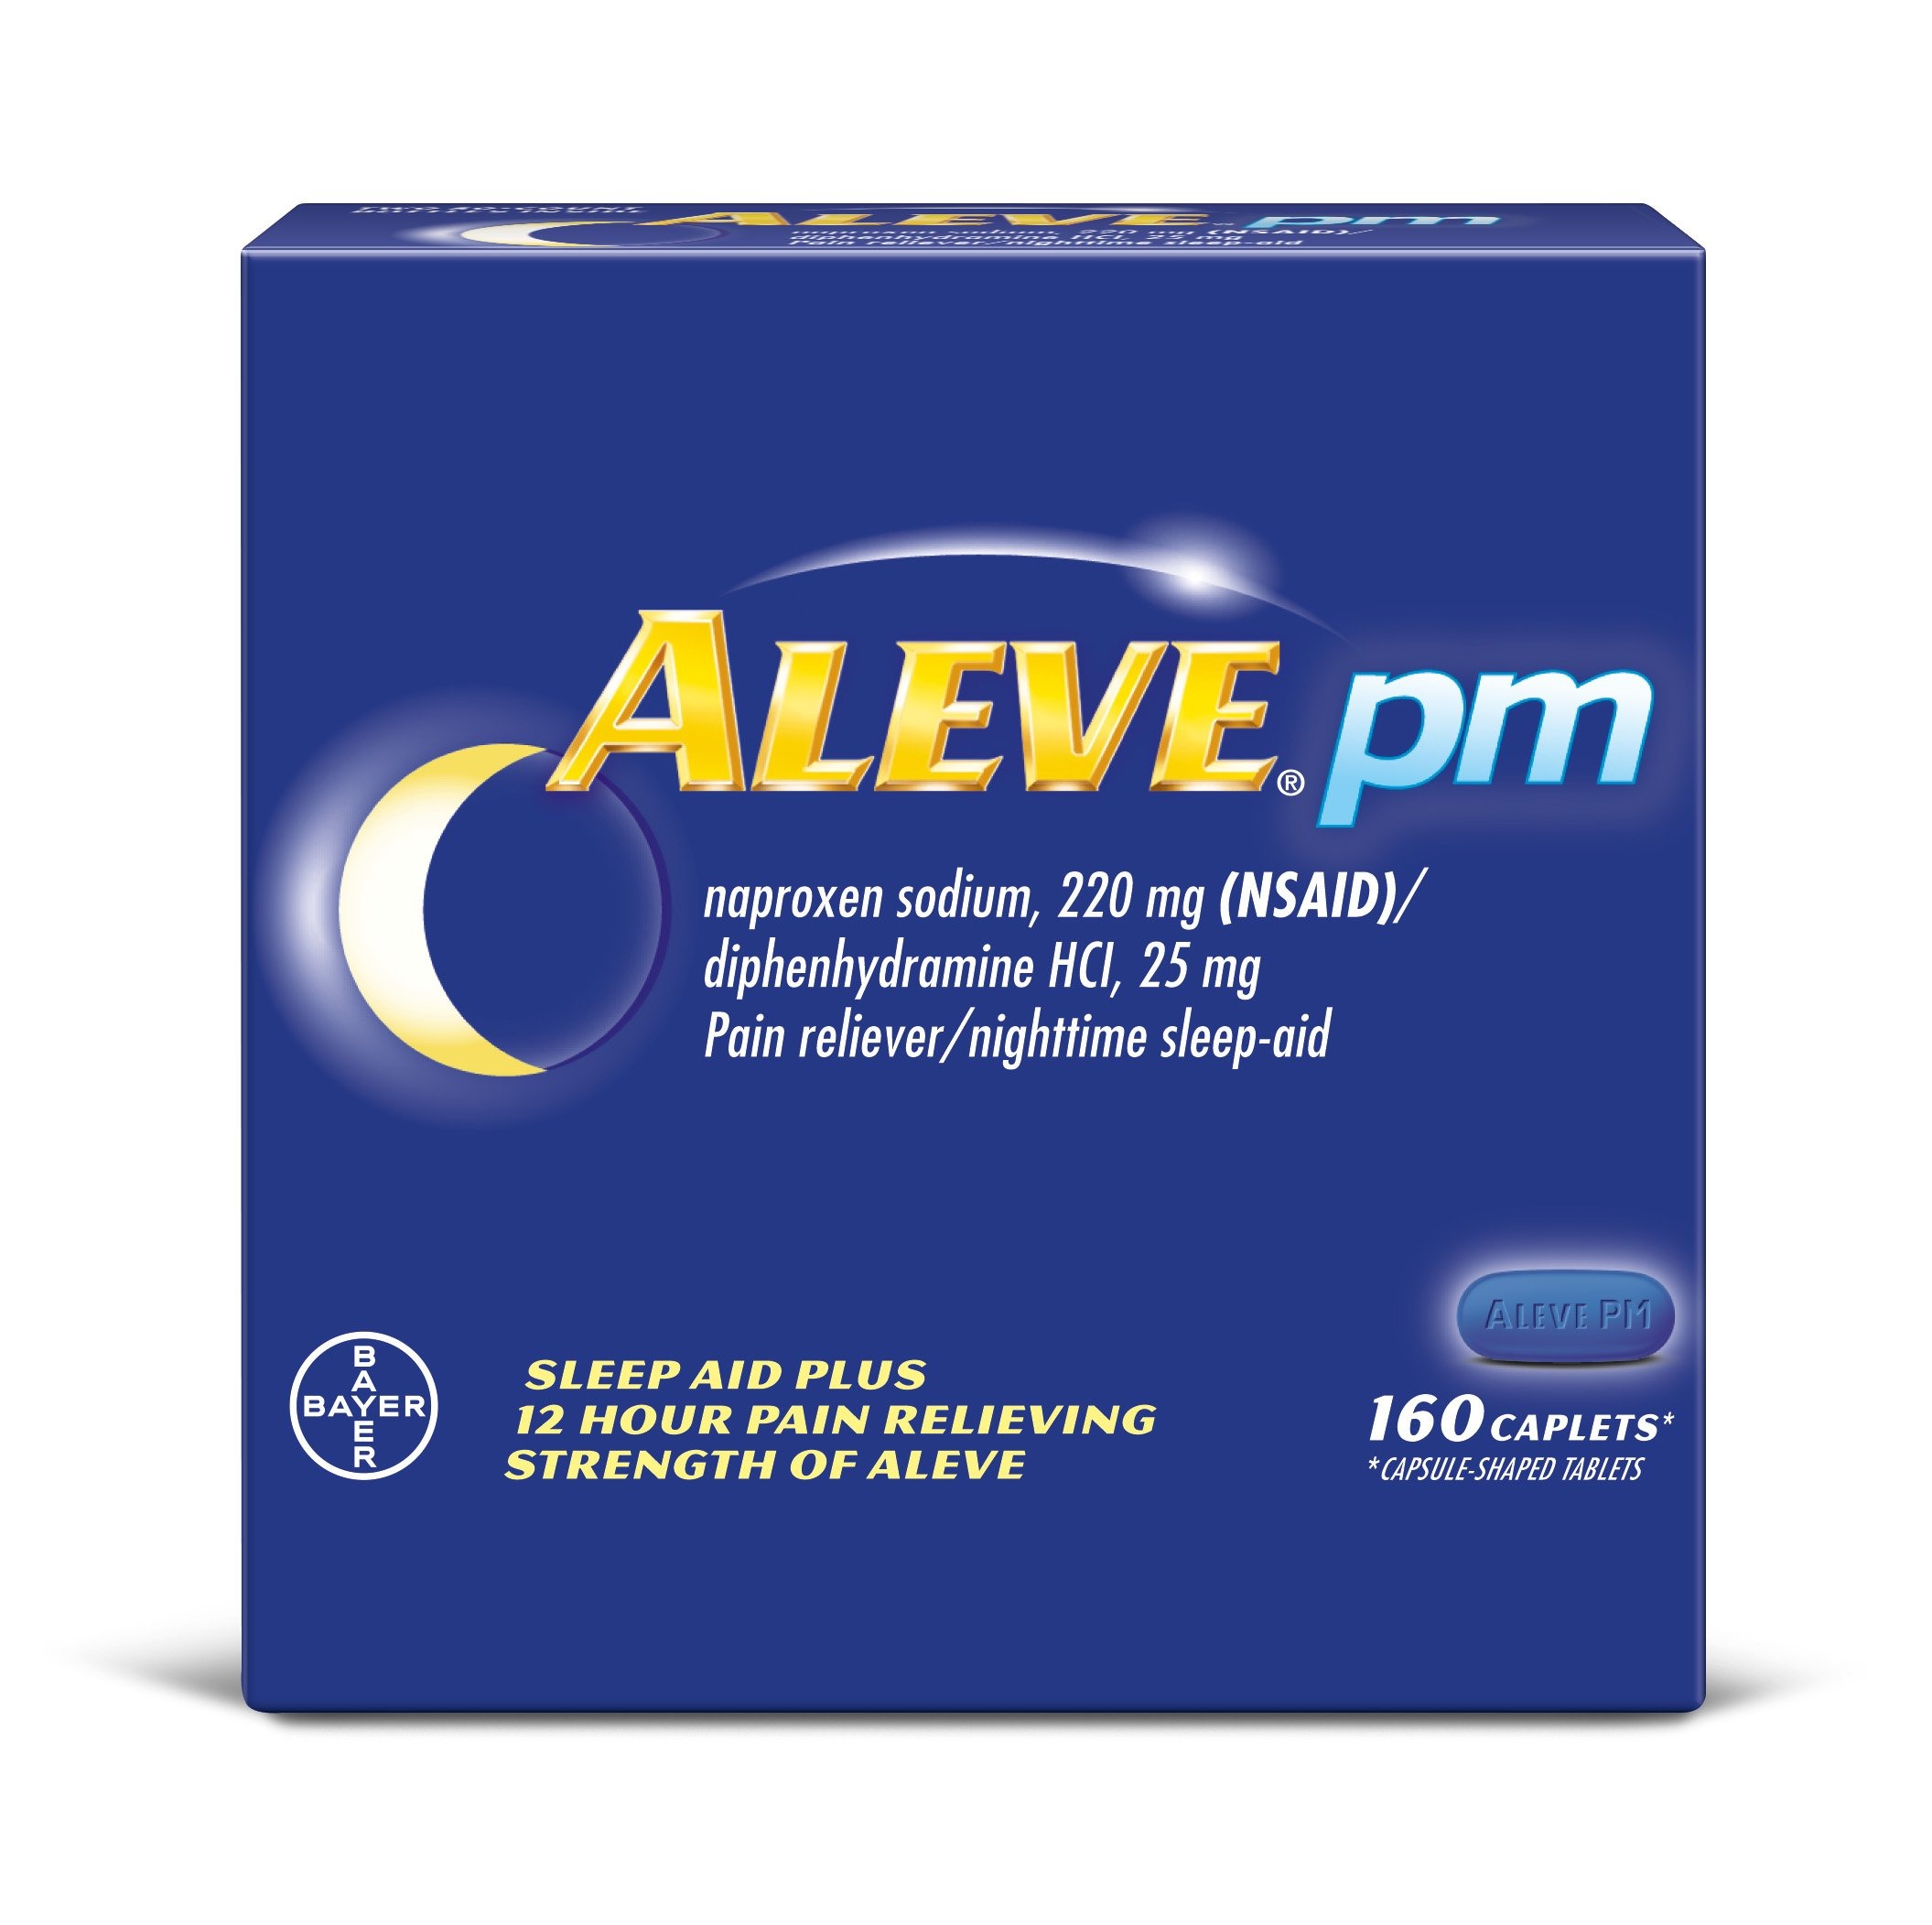 Aleve PM Pain Reliever/Fever Reducer/Sleep Aid Caplets, 160 Count